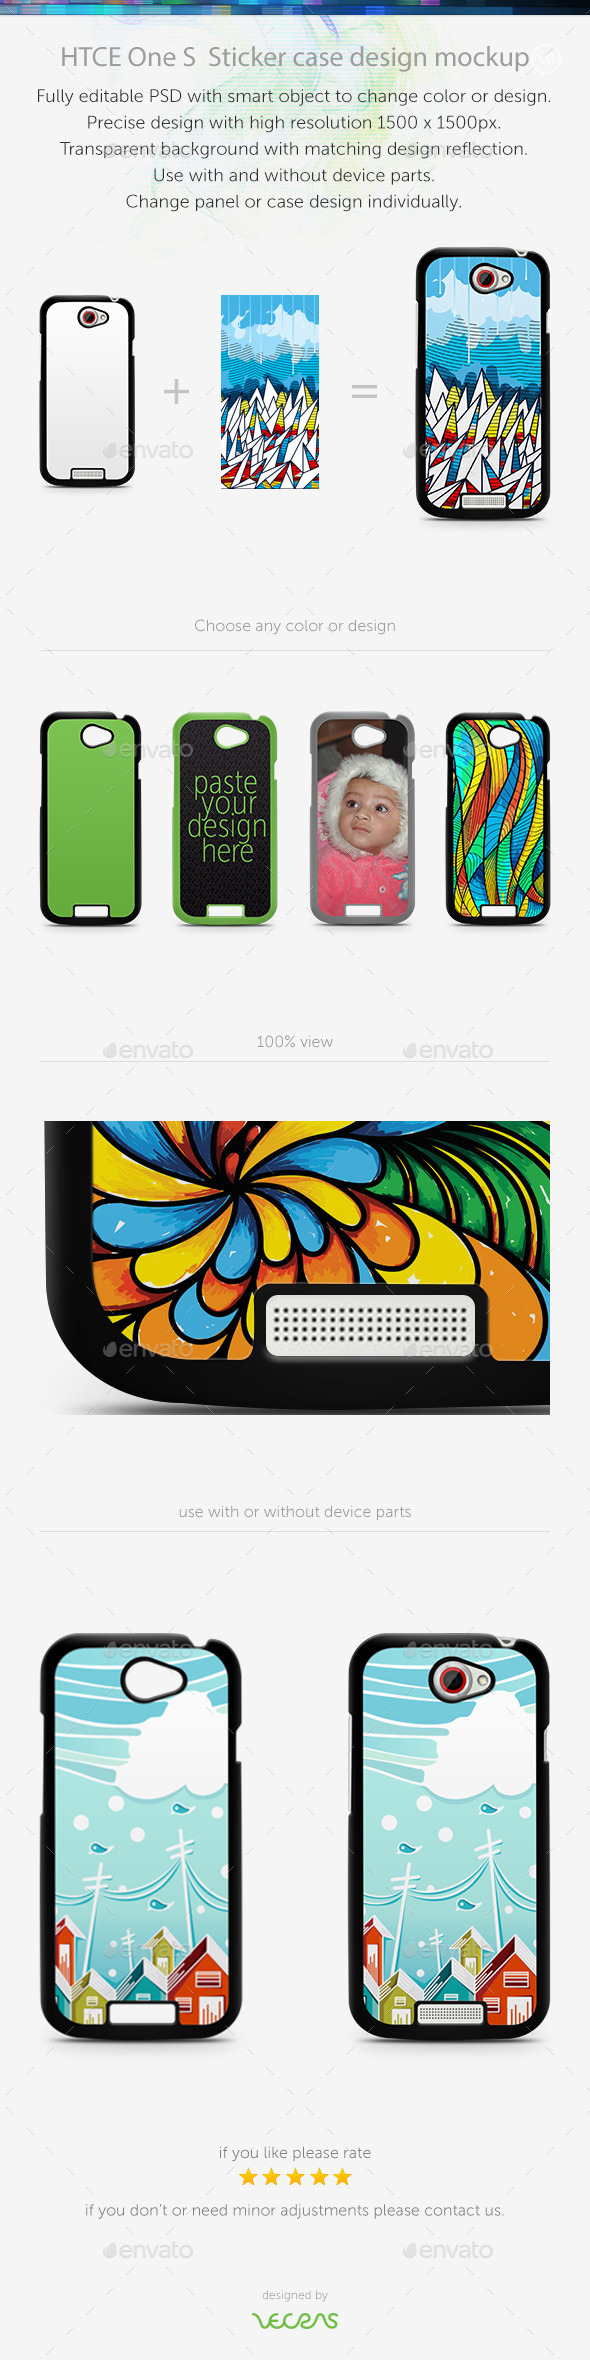 HTCE One X Sticker Case Design Mockup - Mobile Displays